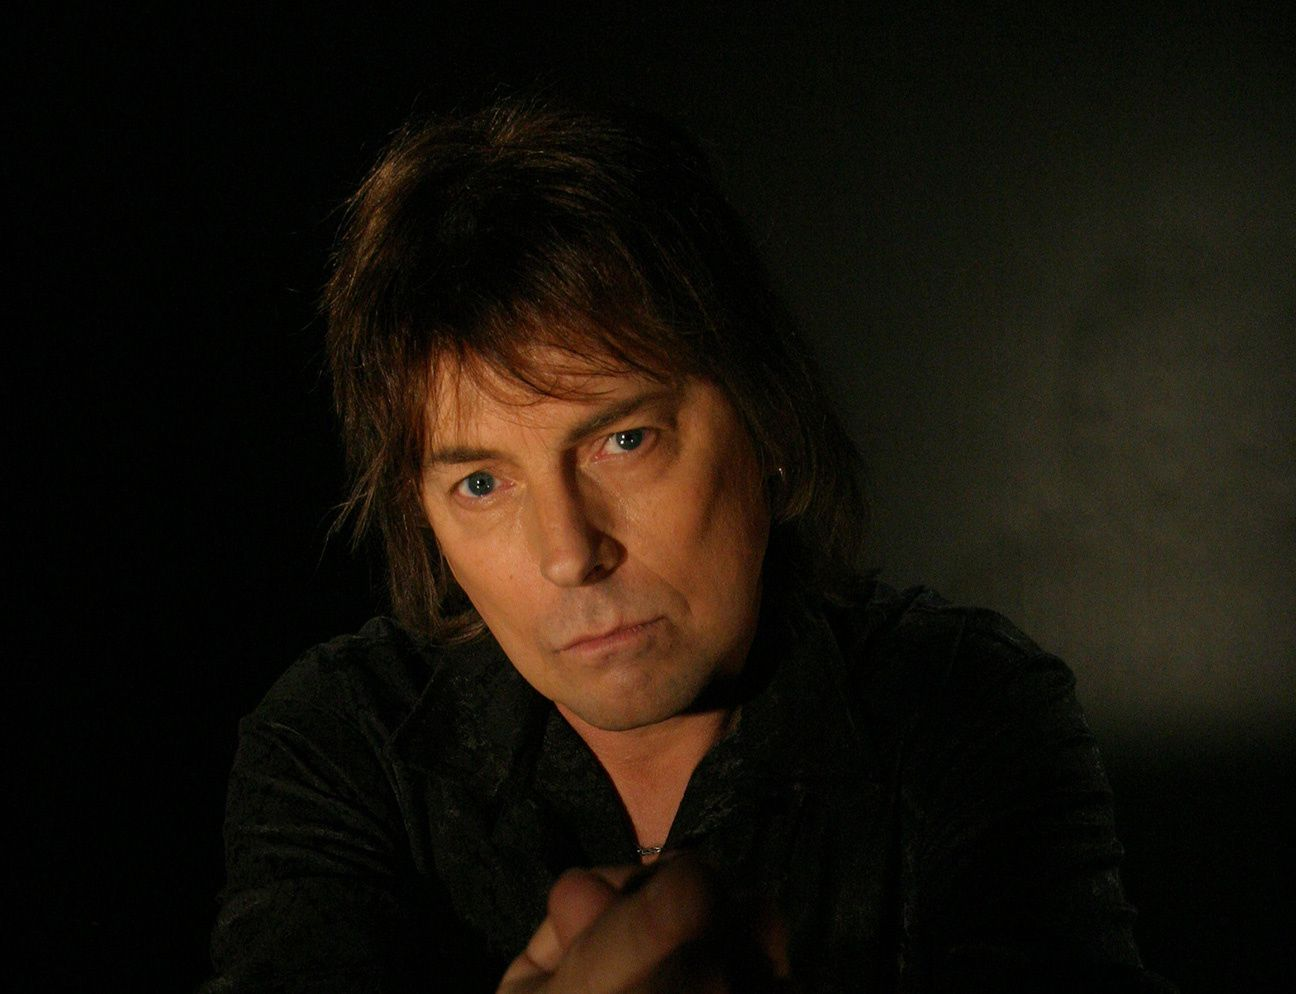 Don Dokken, vocalist and founder of Dokken